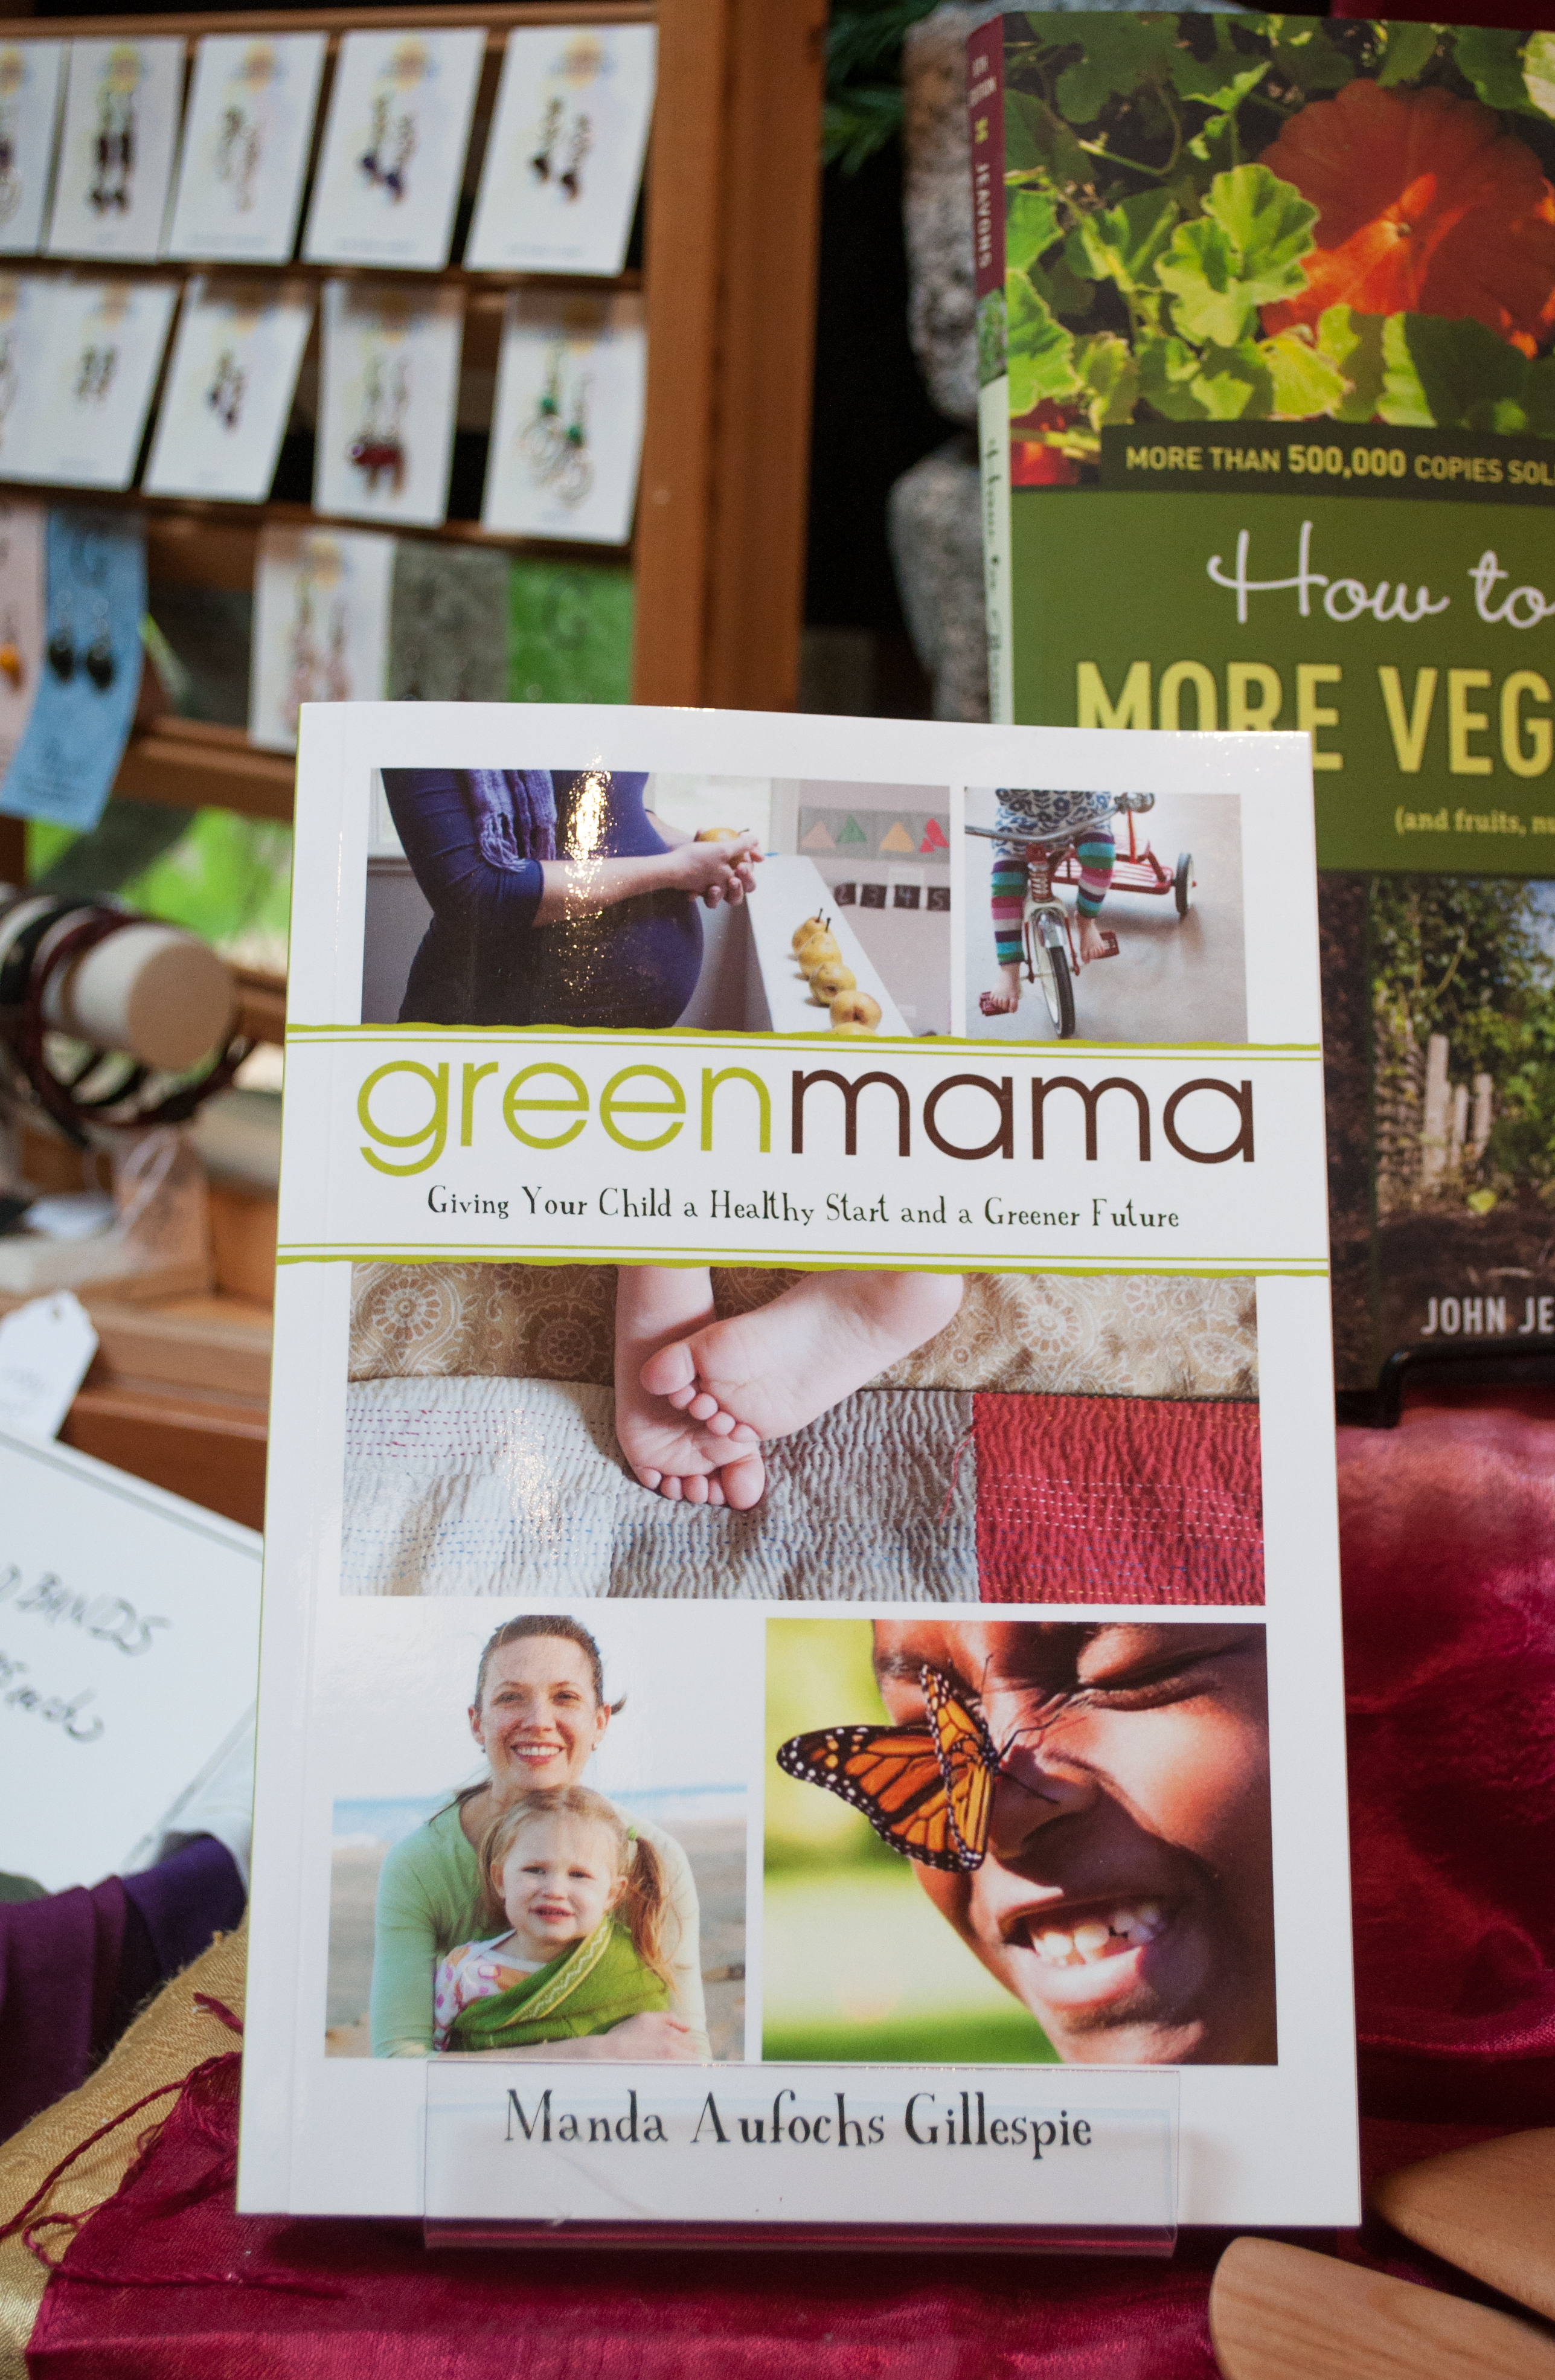 The Green Mama classes are fun, upbeat, and educational